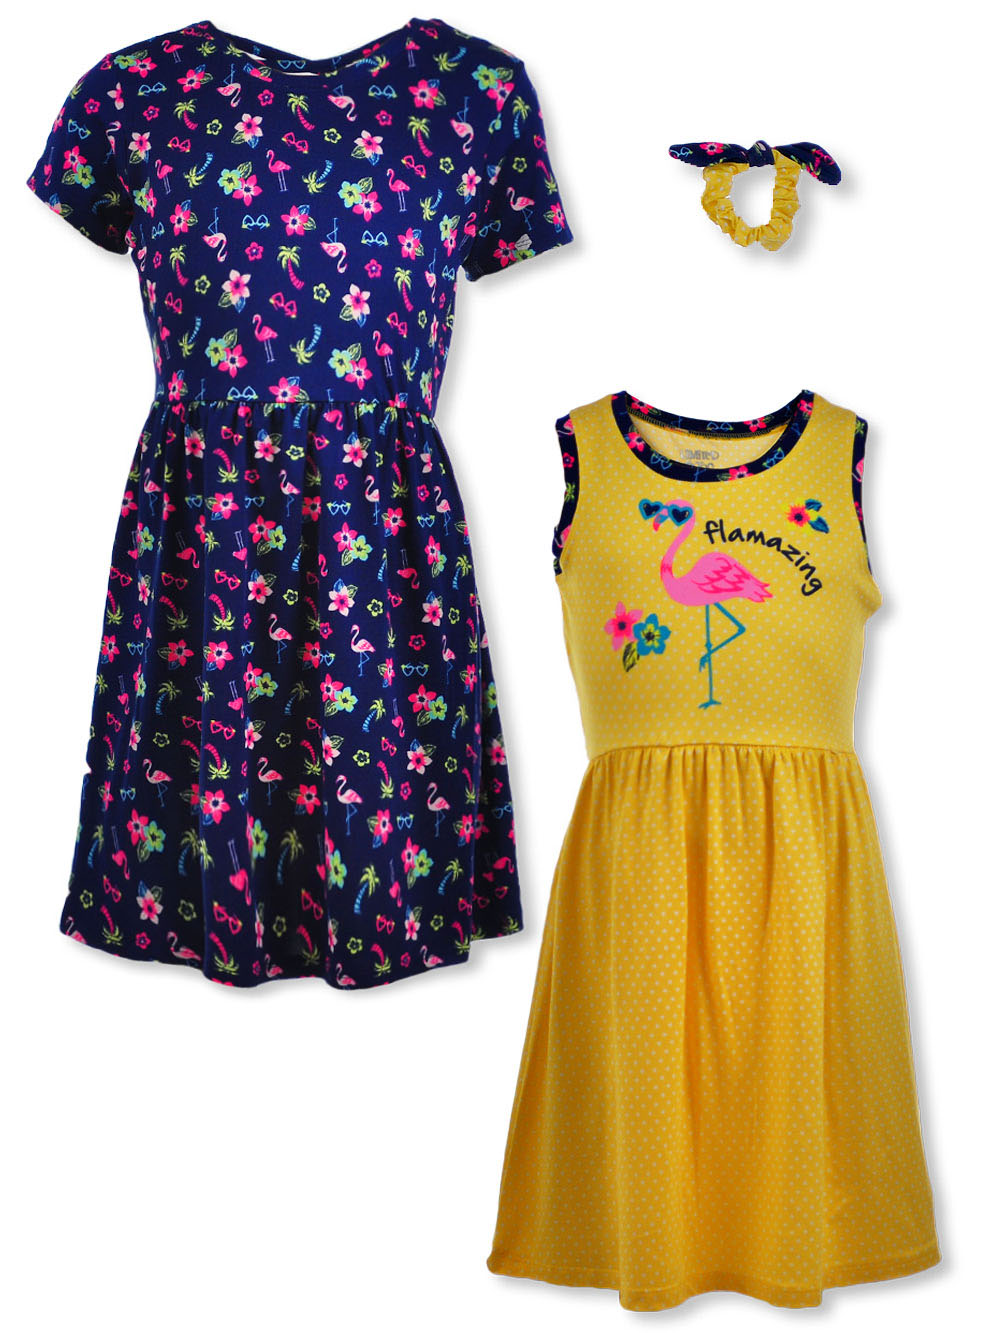 Girls' 2-Pack Dresses